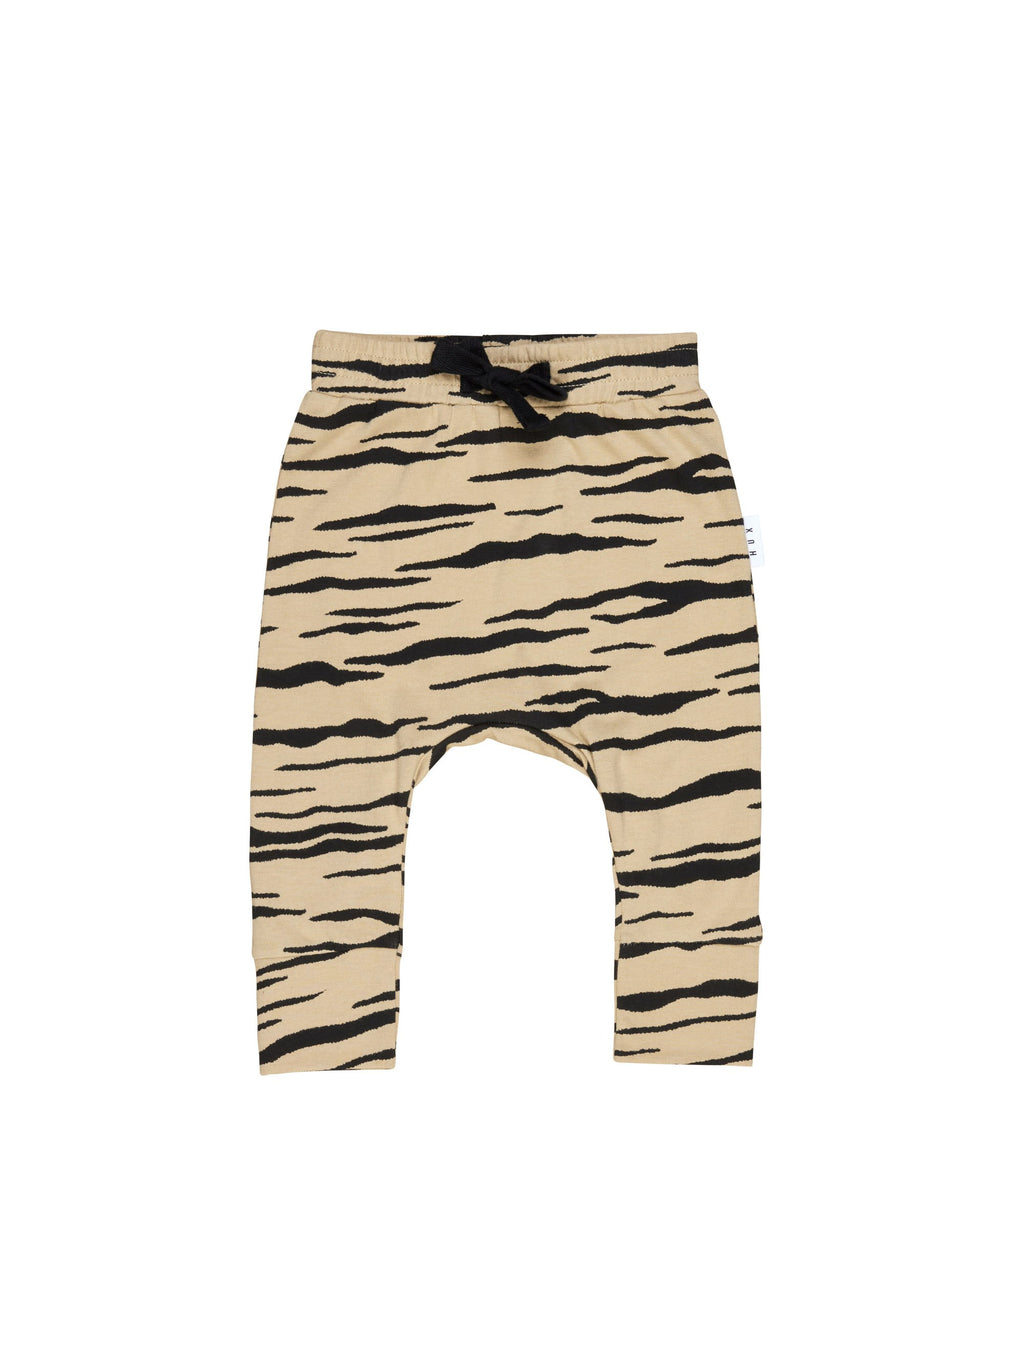 Huxbaby Wildcat Drop Crotch Pant - HB1855